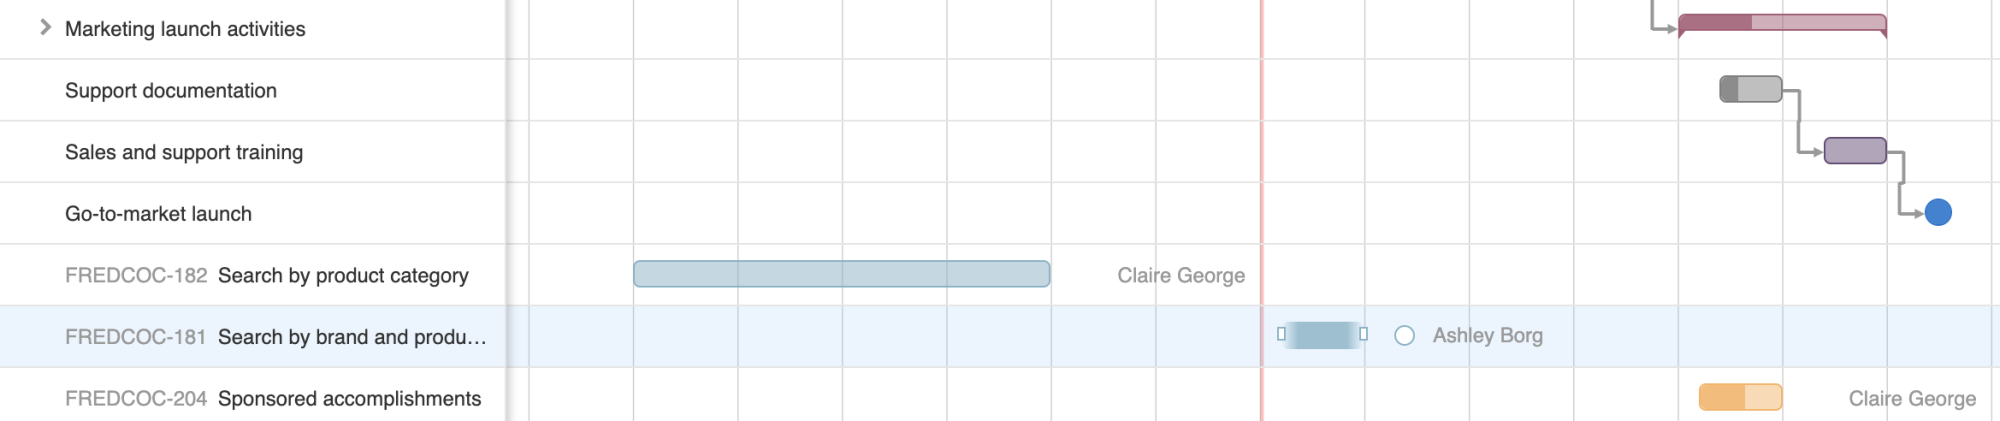 Feature without dates that is displayed on the Gantt chart.